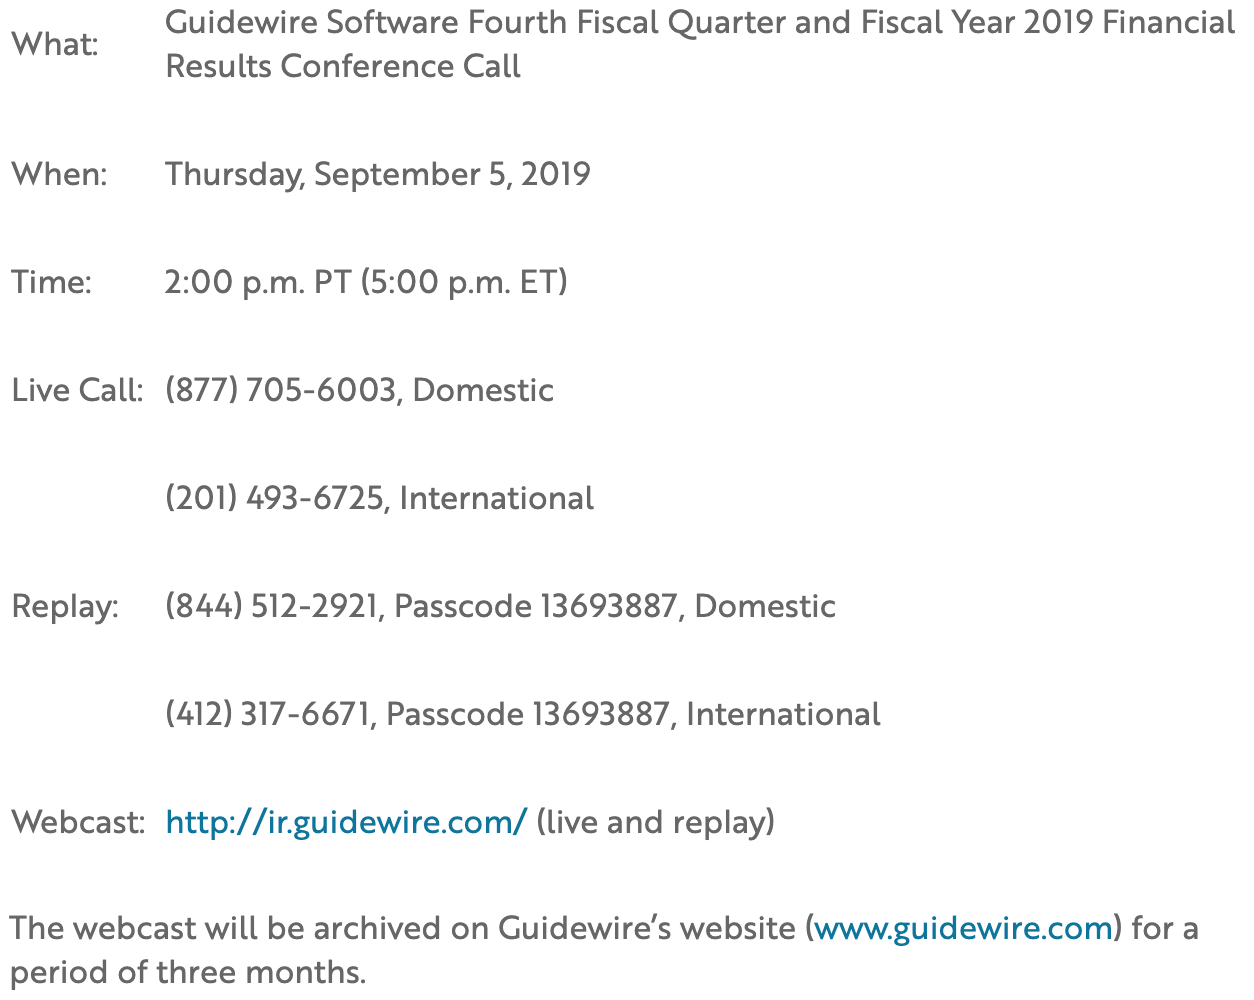 Fourth Fiscal Quarter and Fiscal Year 2019 Tab 2